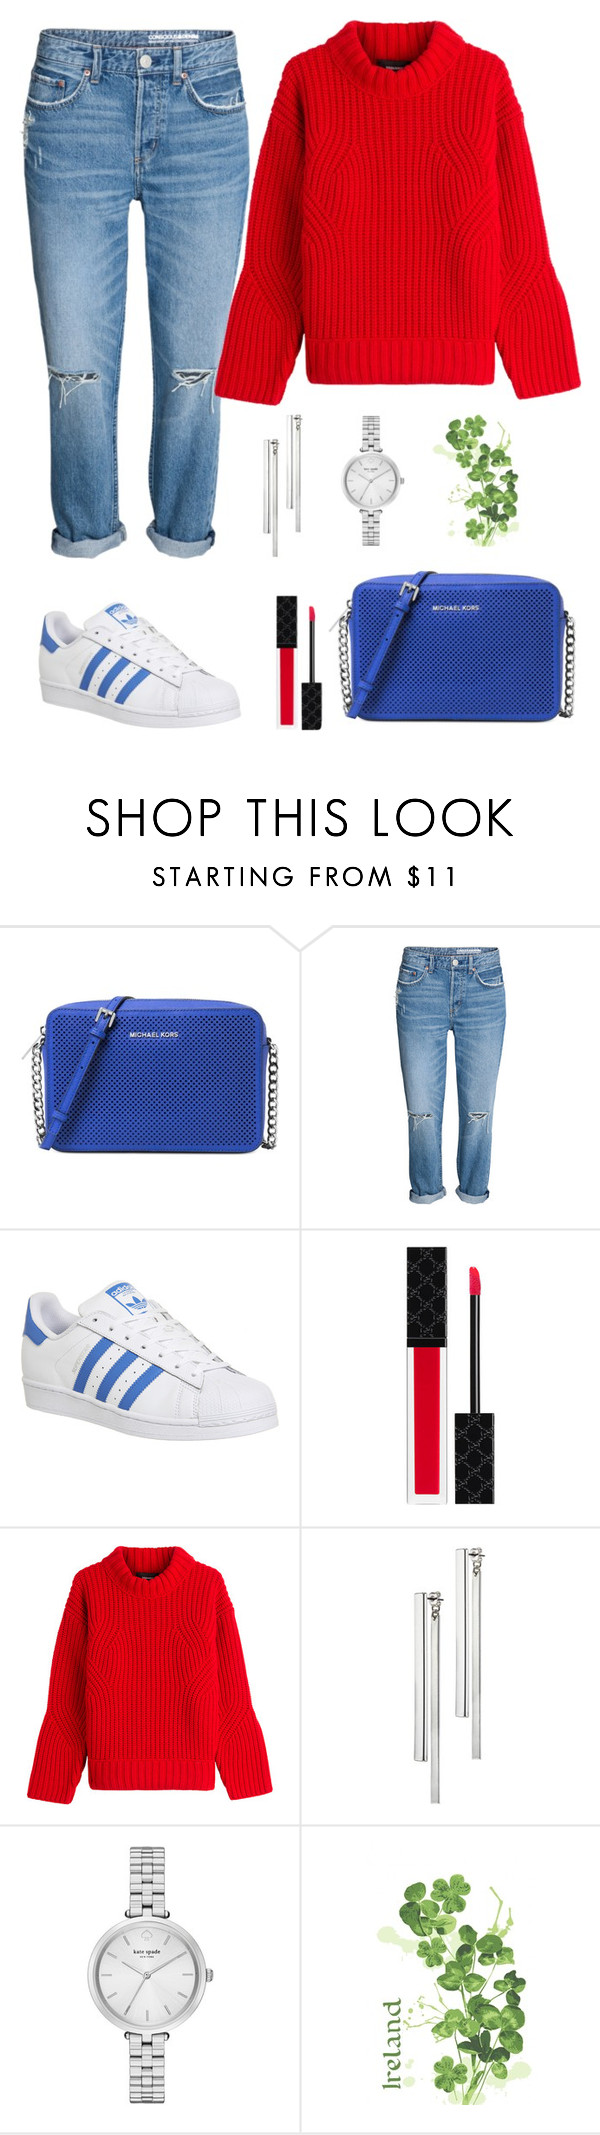 """Popular."" by schenonek ❤ liked on Polyvore featuring Michael Kors, adidas, Gucci, Dsquared2, Kain, Kate Spade and Ulster Weavers"